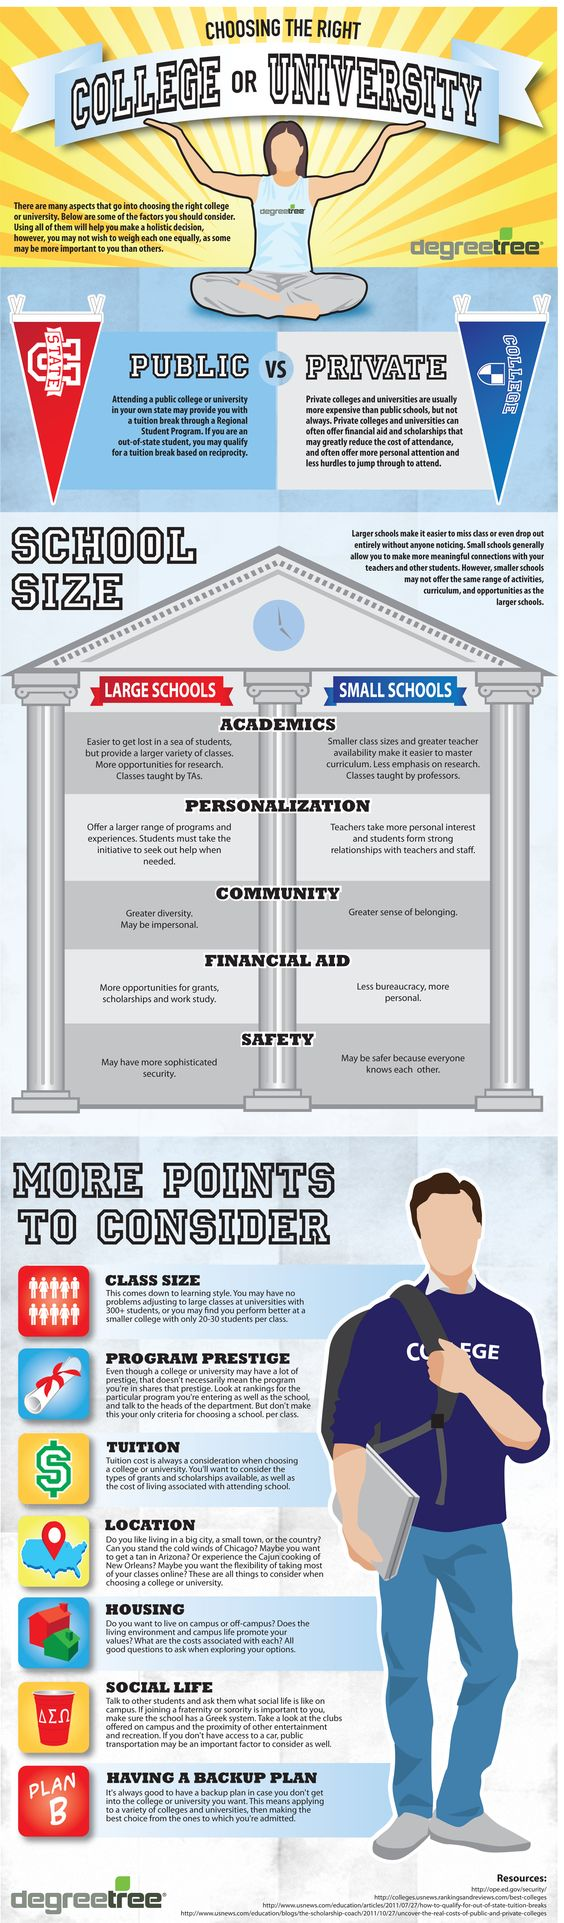 how to choose the right college or university infographics how to choose the right college or university